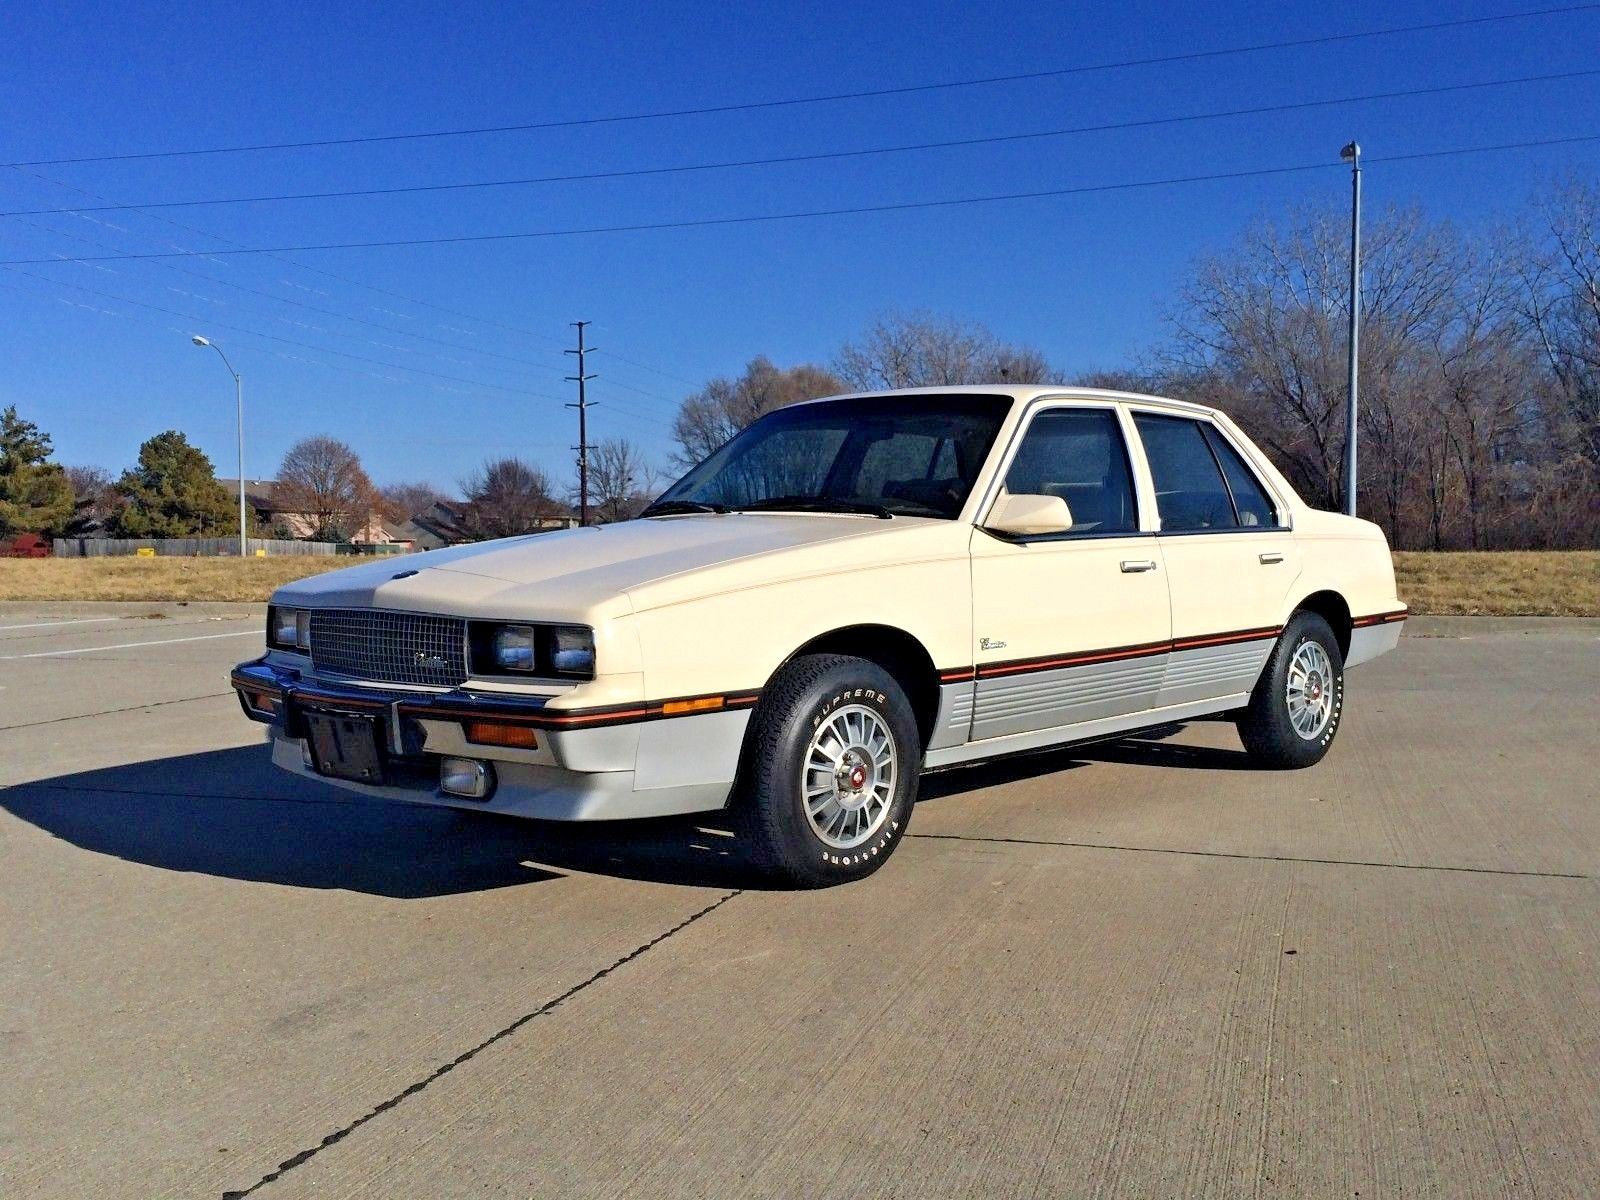 ebay find of the week 1985 cadillac cimarron hagerty media week 1985 cadillac cimarron